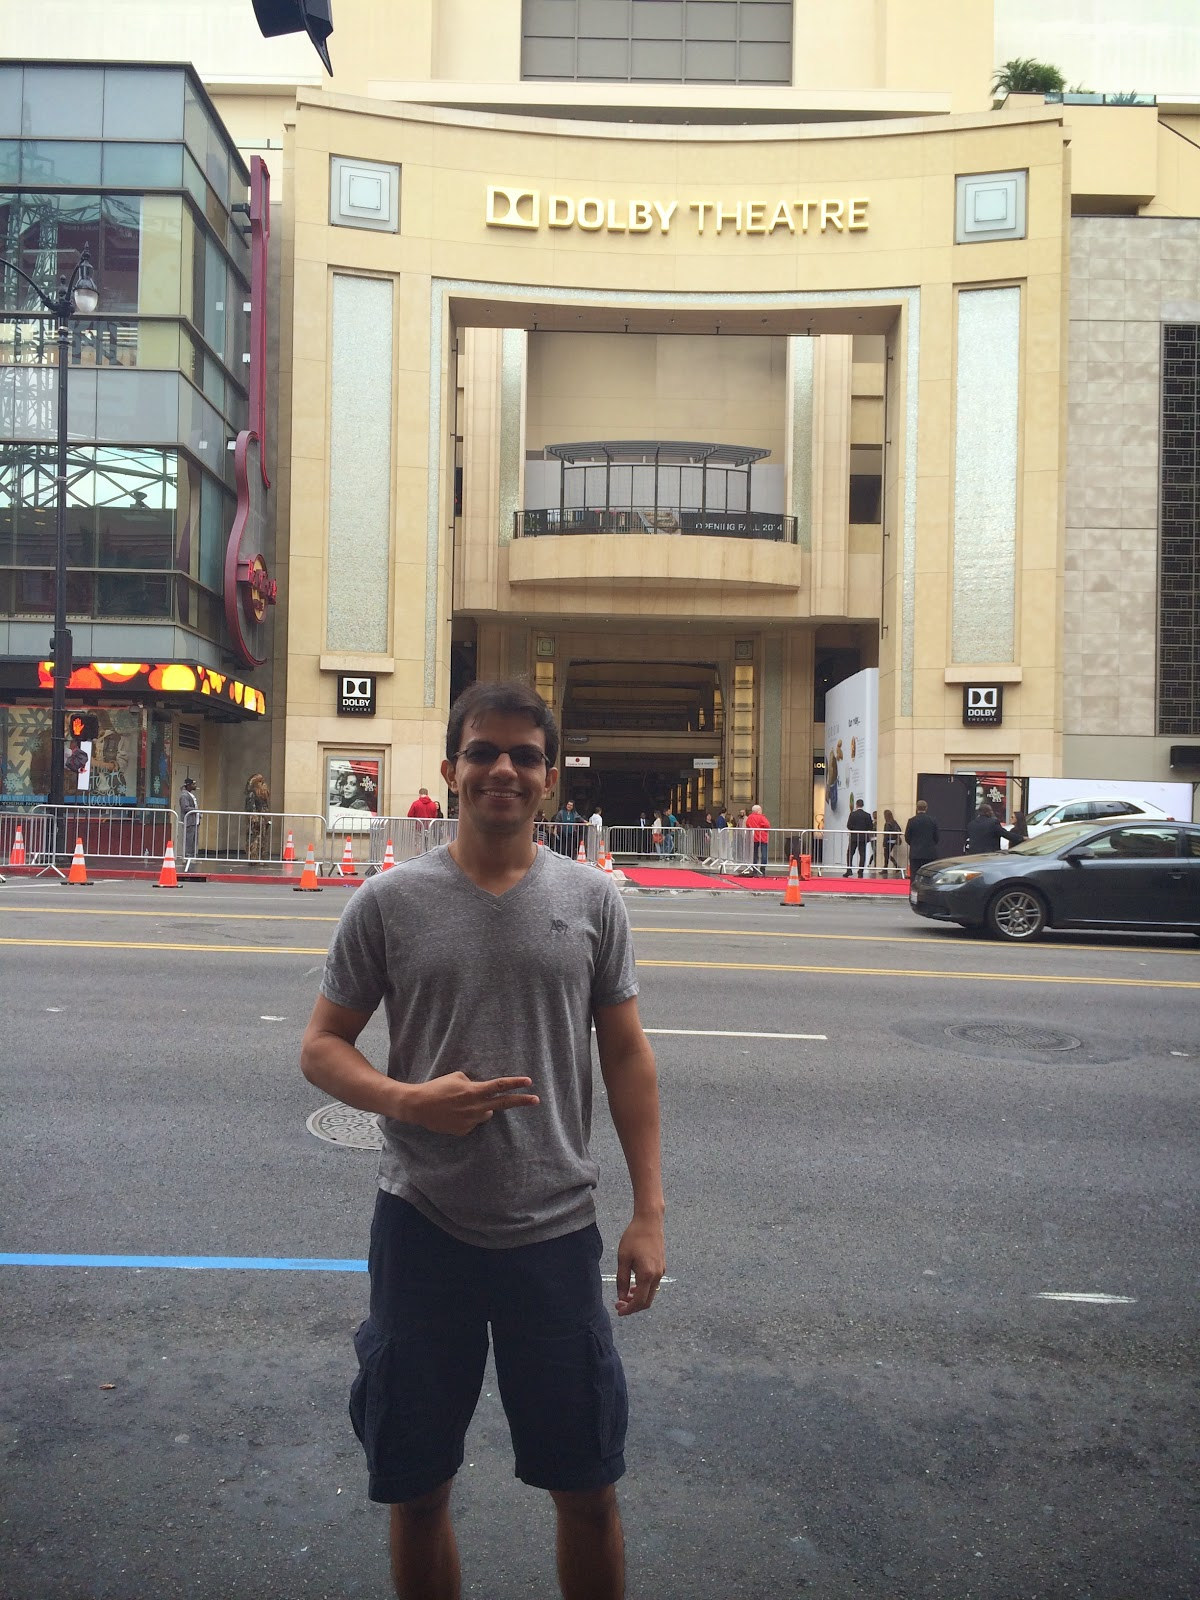 dolby theater - hollywood - los angeles - california